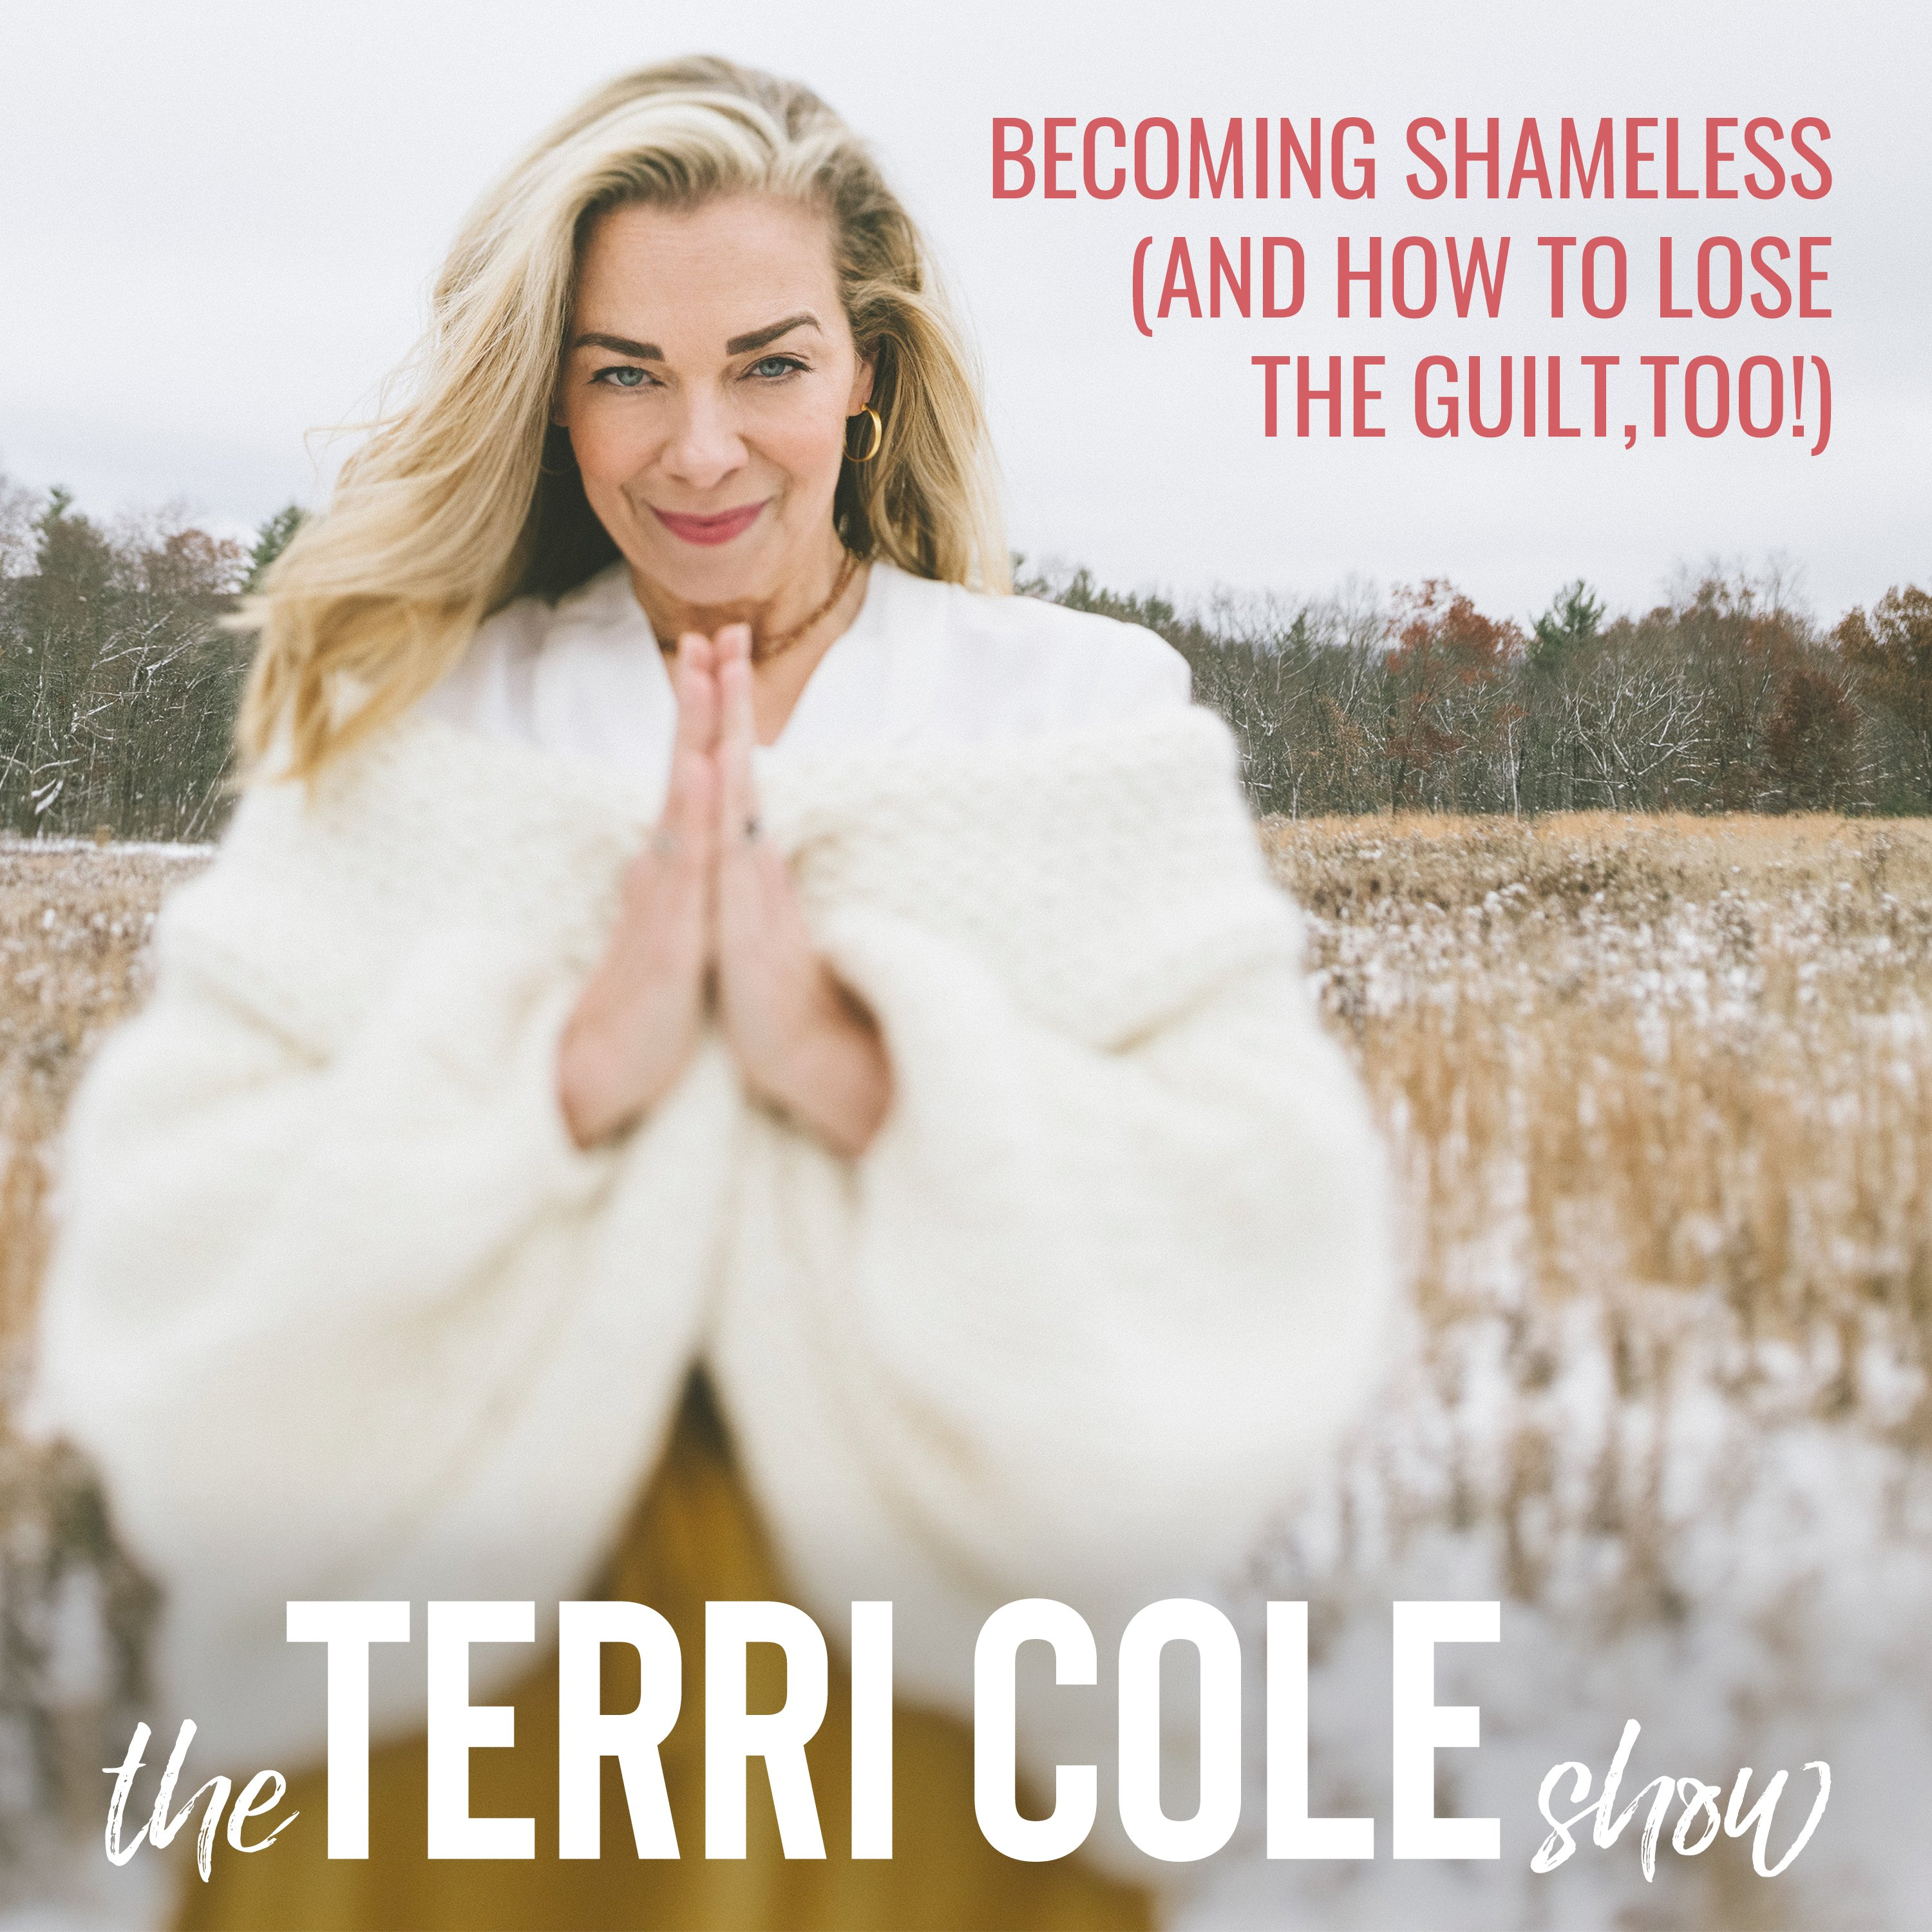 Becoming Shameless (and how to lose the guilt, too!) - The Terri Cole Show